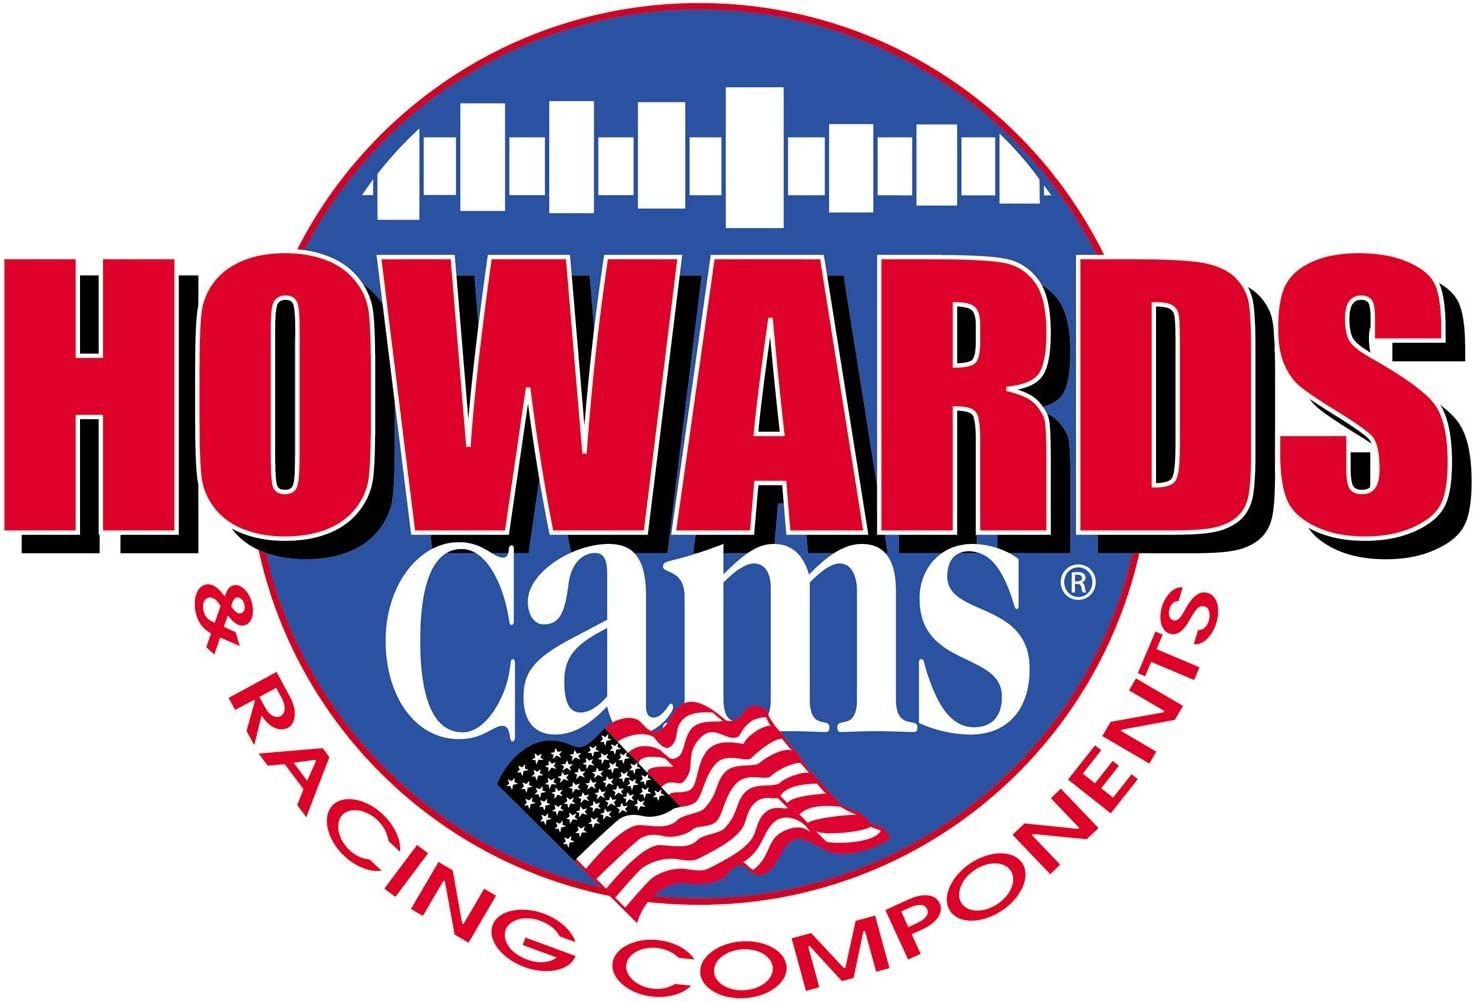 Howards Cams CL120245 Cam